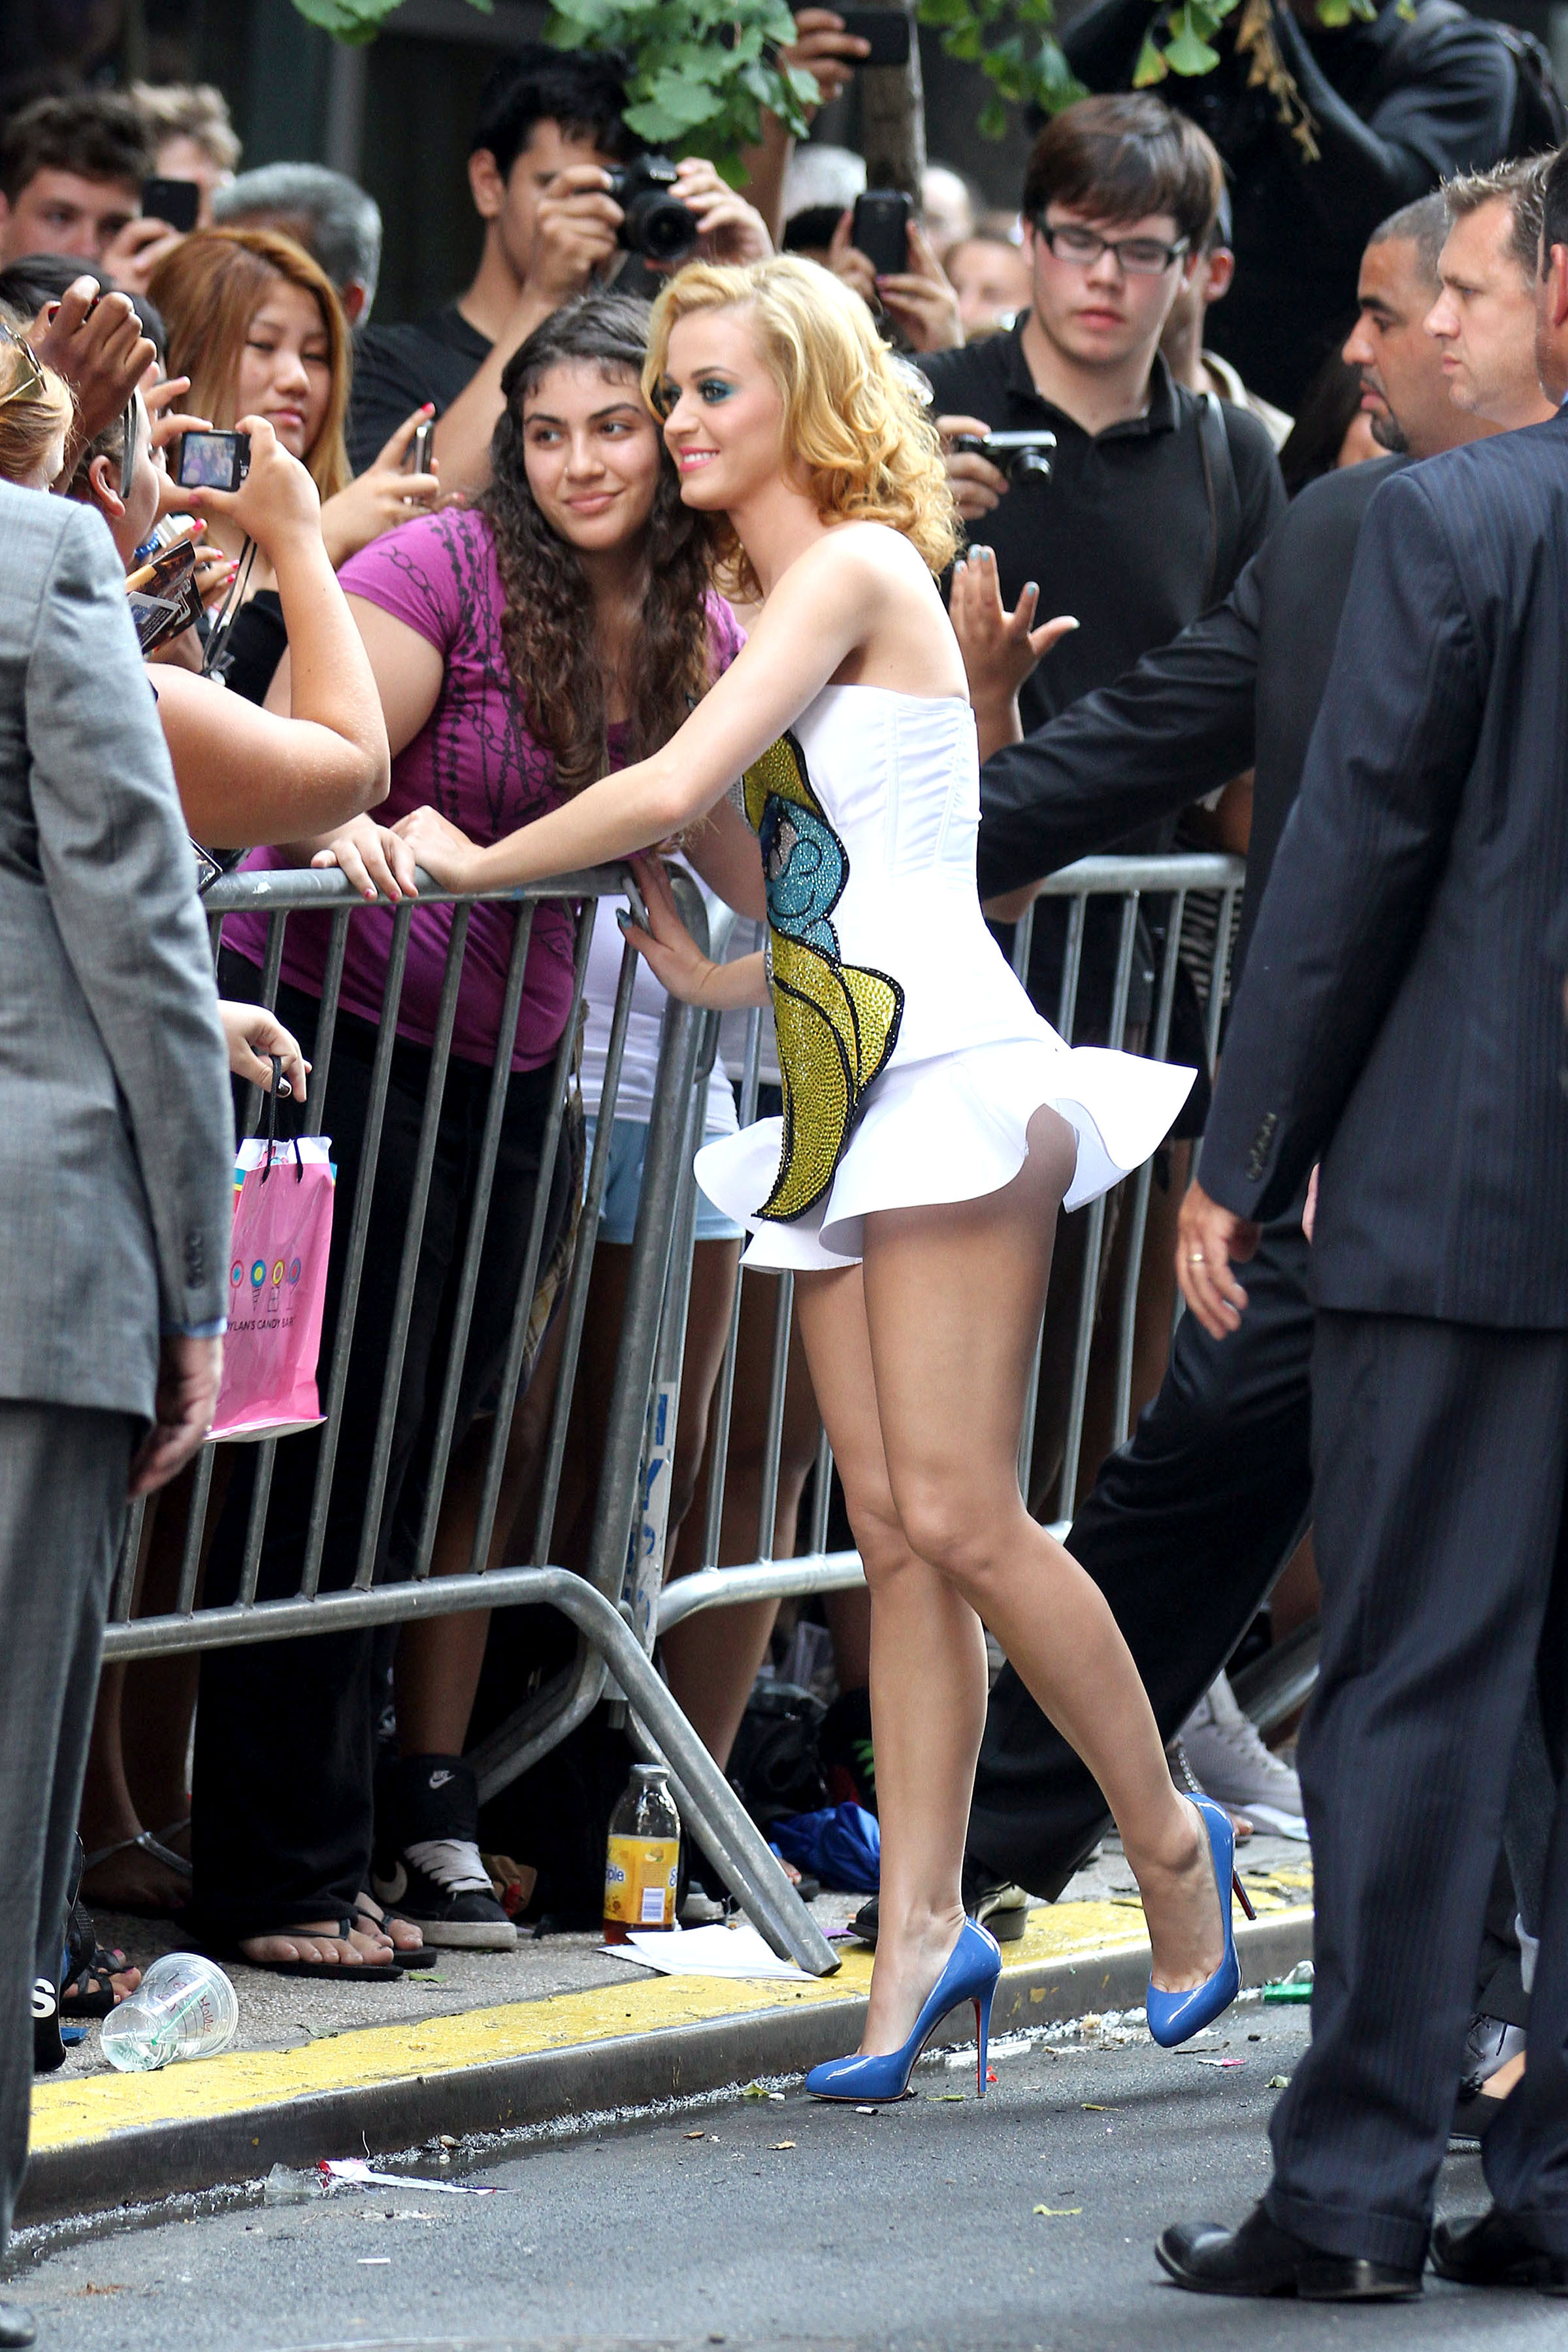 katy-perry-the-smurfs-3d-premiere-in-new